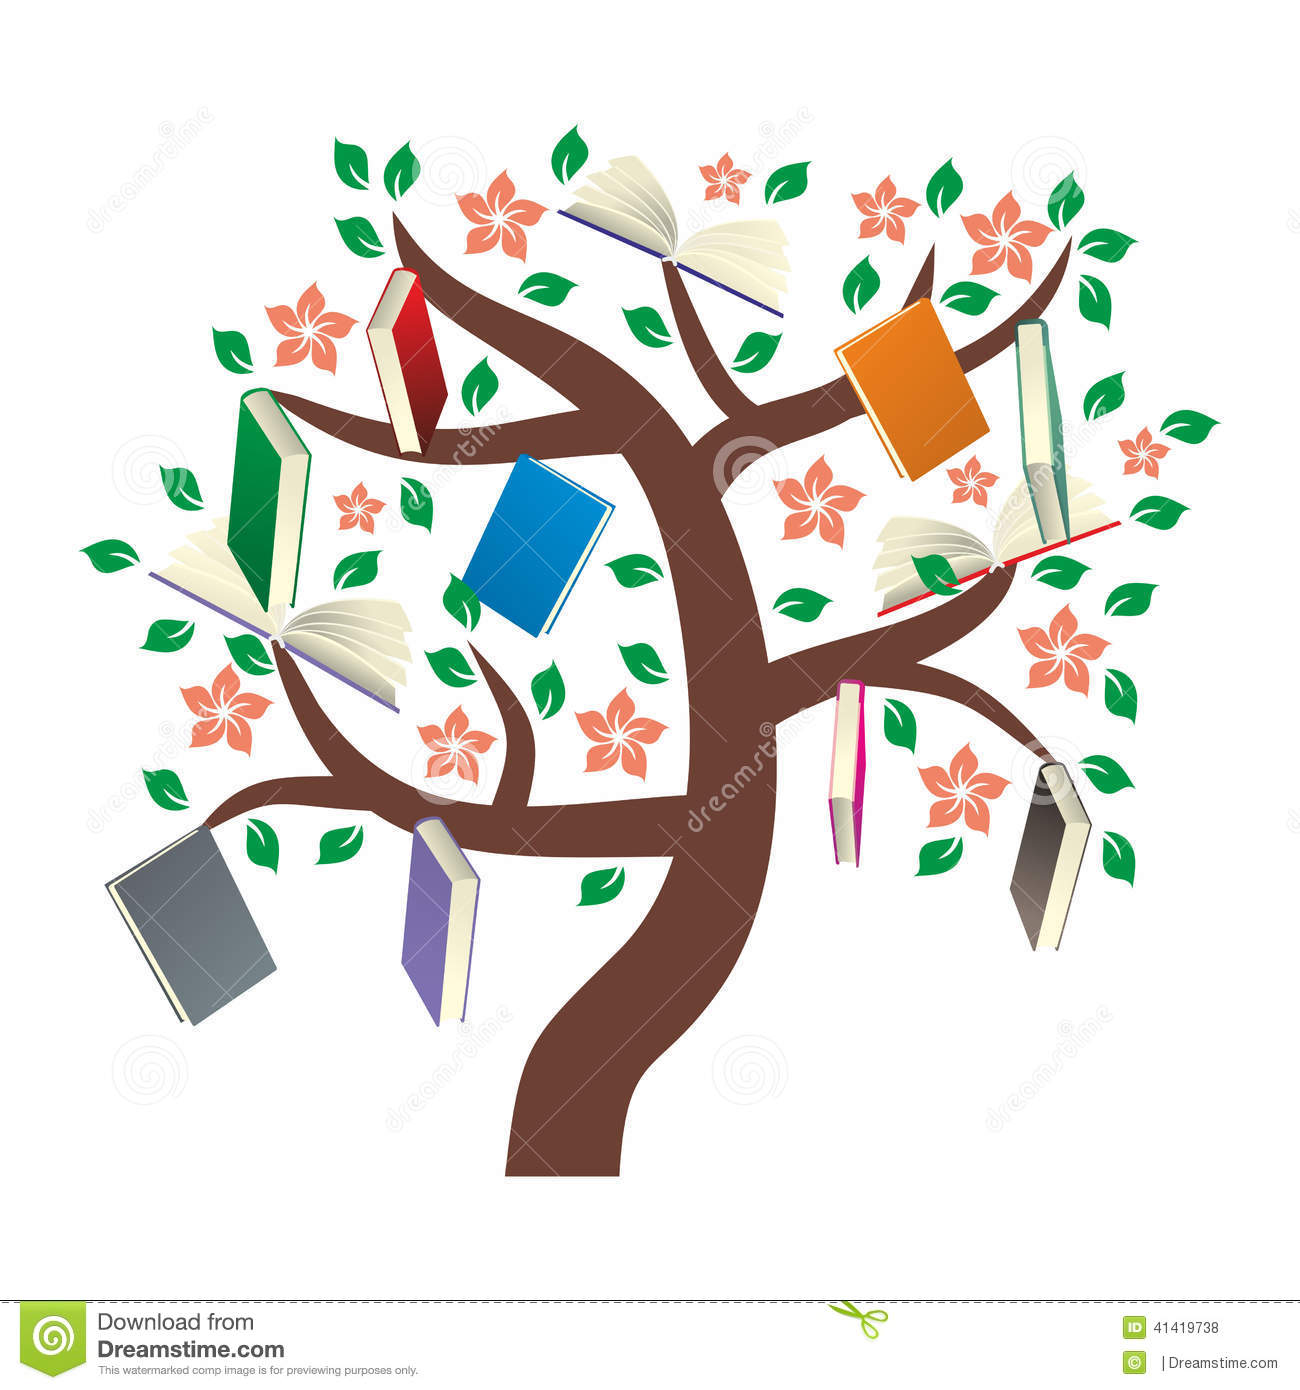 Fall Out Boy Symbol Wallpaper Knowledge Tree With Leaves Stock Vector Illustration Of